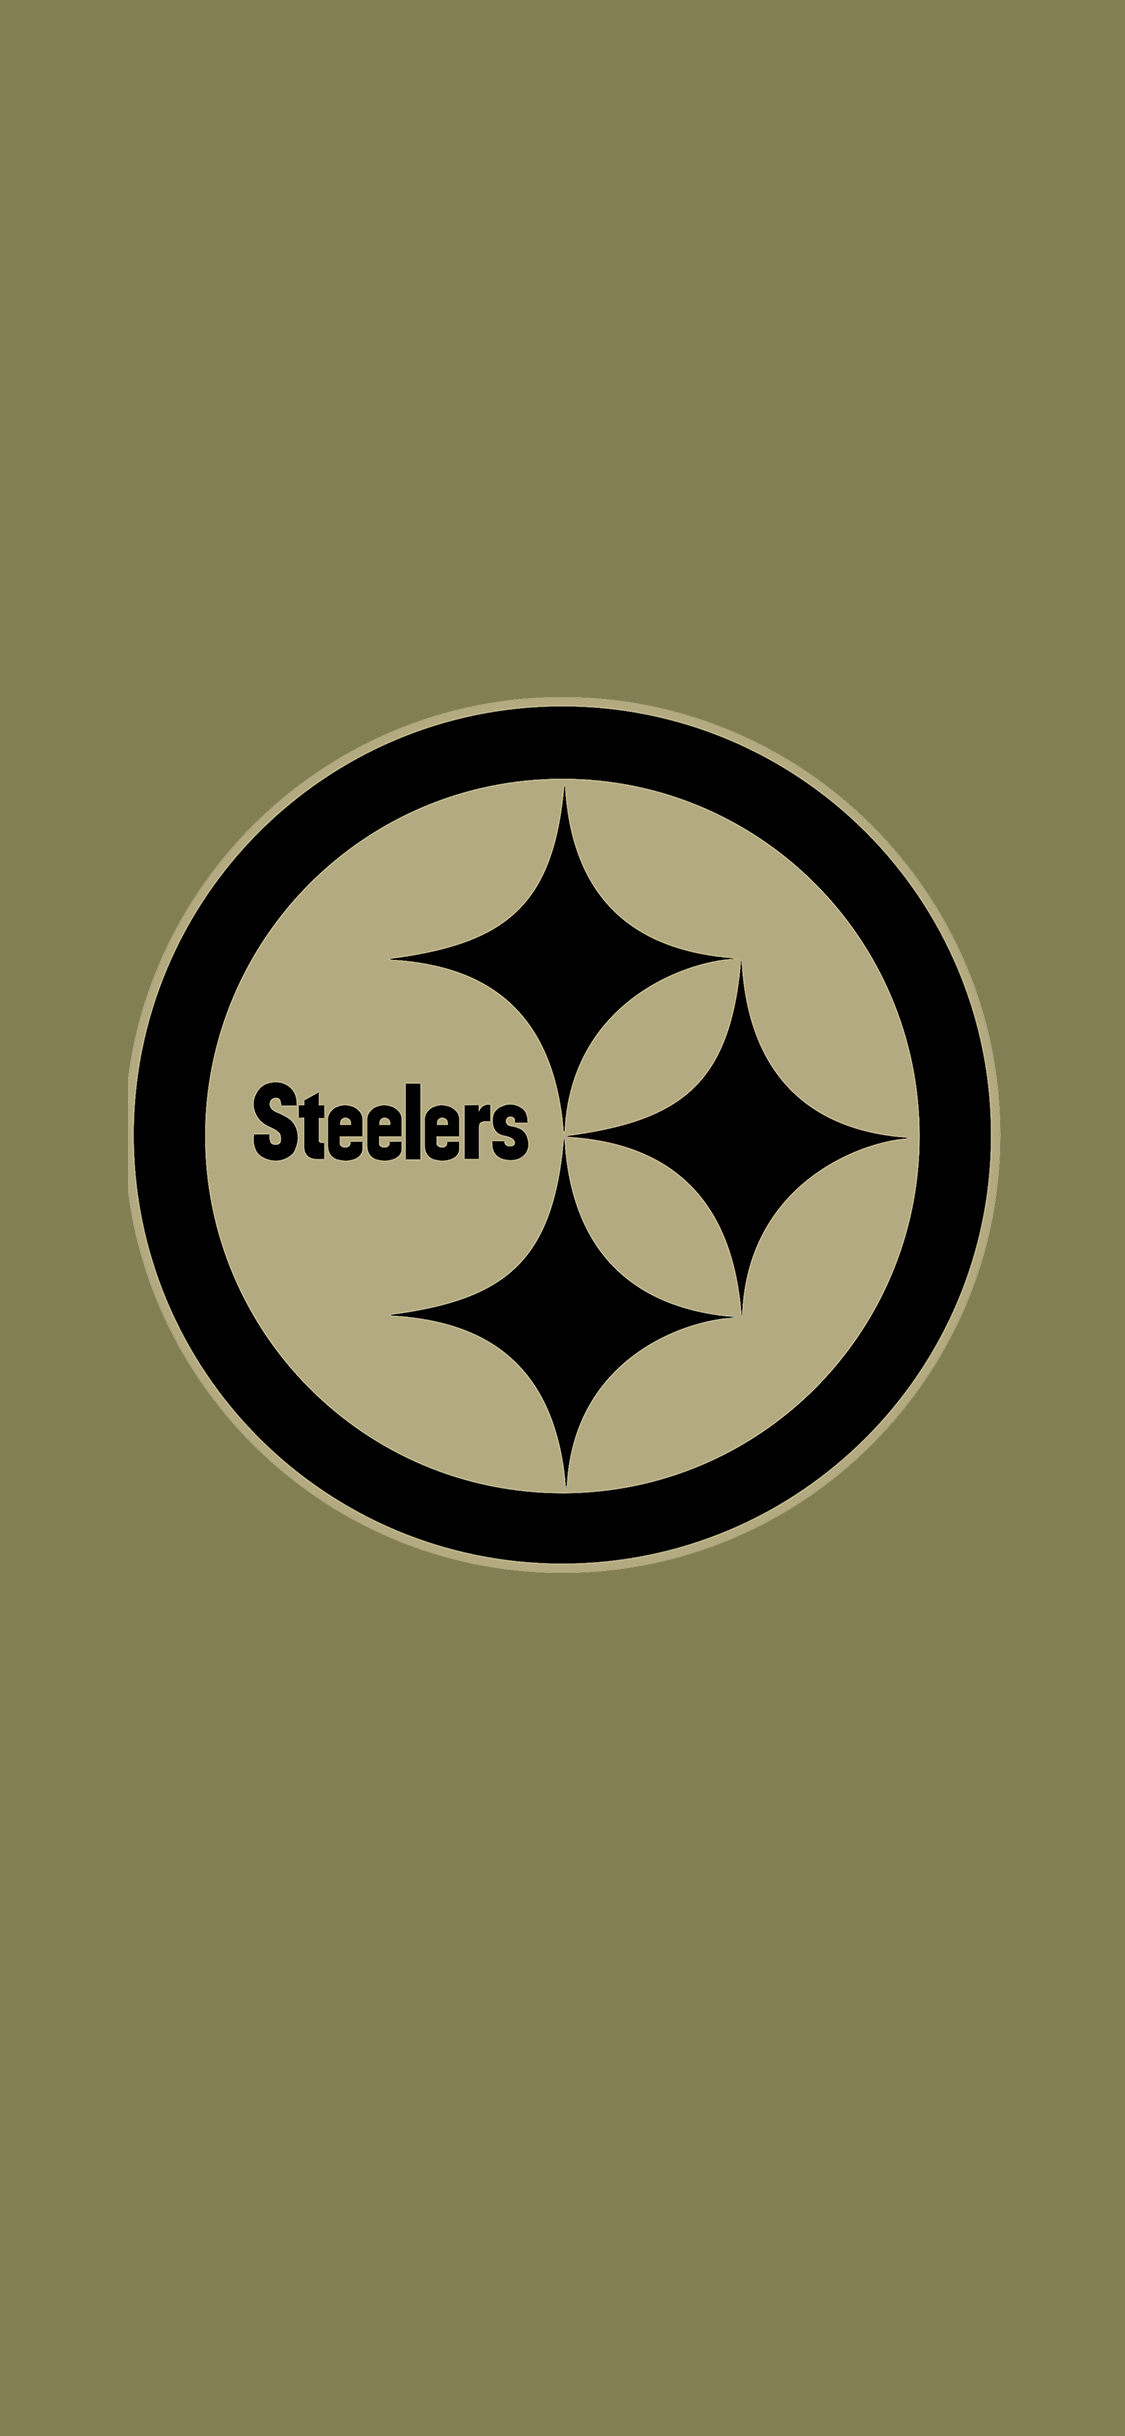 Steelers Wallpaper Iphone X Data Src Full 1237002 Pittsburgh Steelers Military Logo 2900069 Hd Wallpaper Backgrounds Download